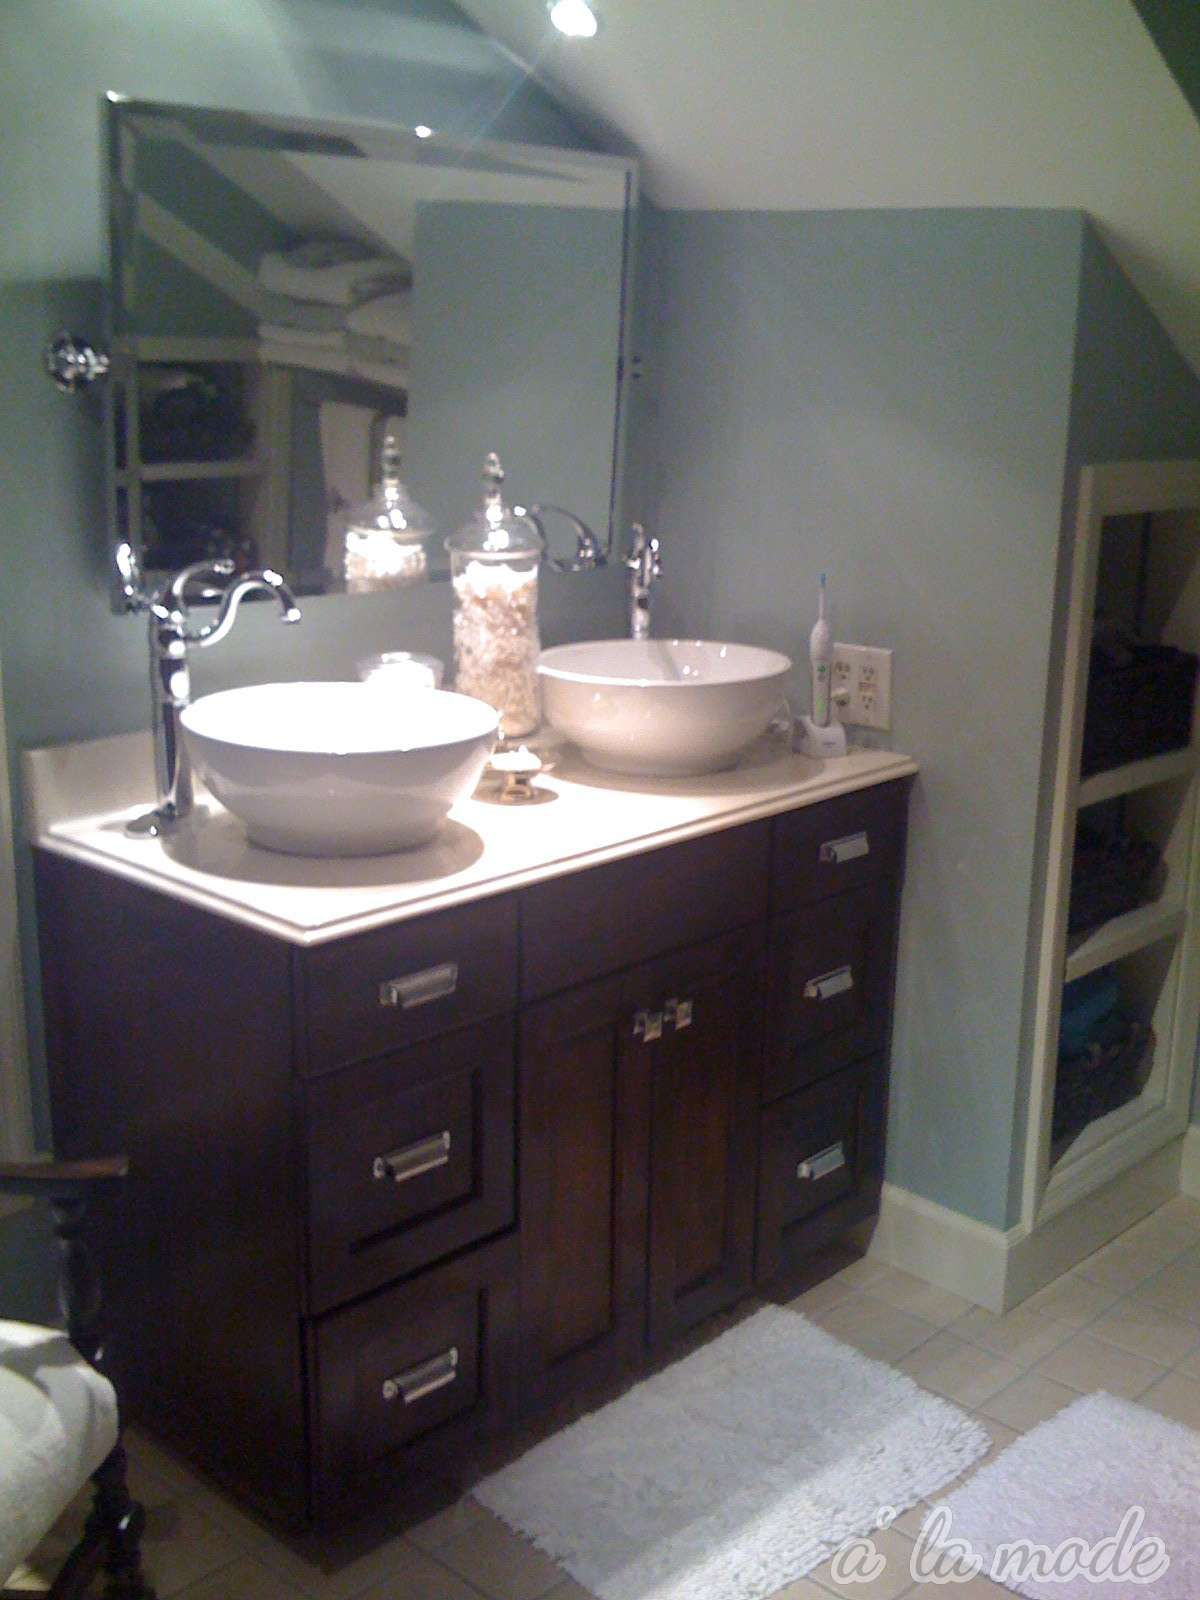 Bathroom Vanity Top Decorating Ideas favored white like porcelain glass vanity top with 2 bowl sink and